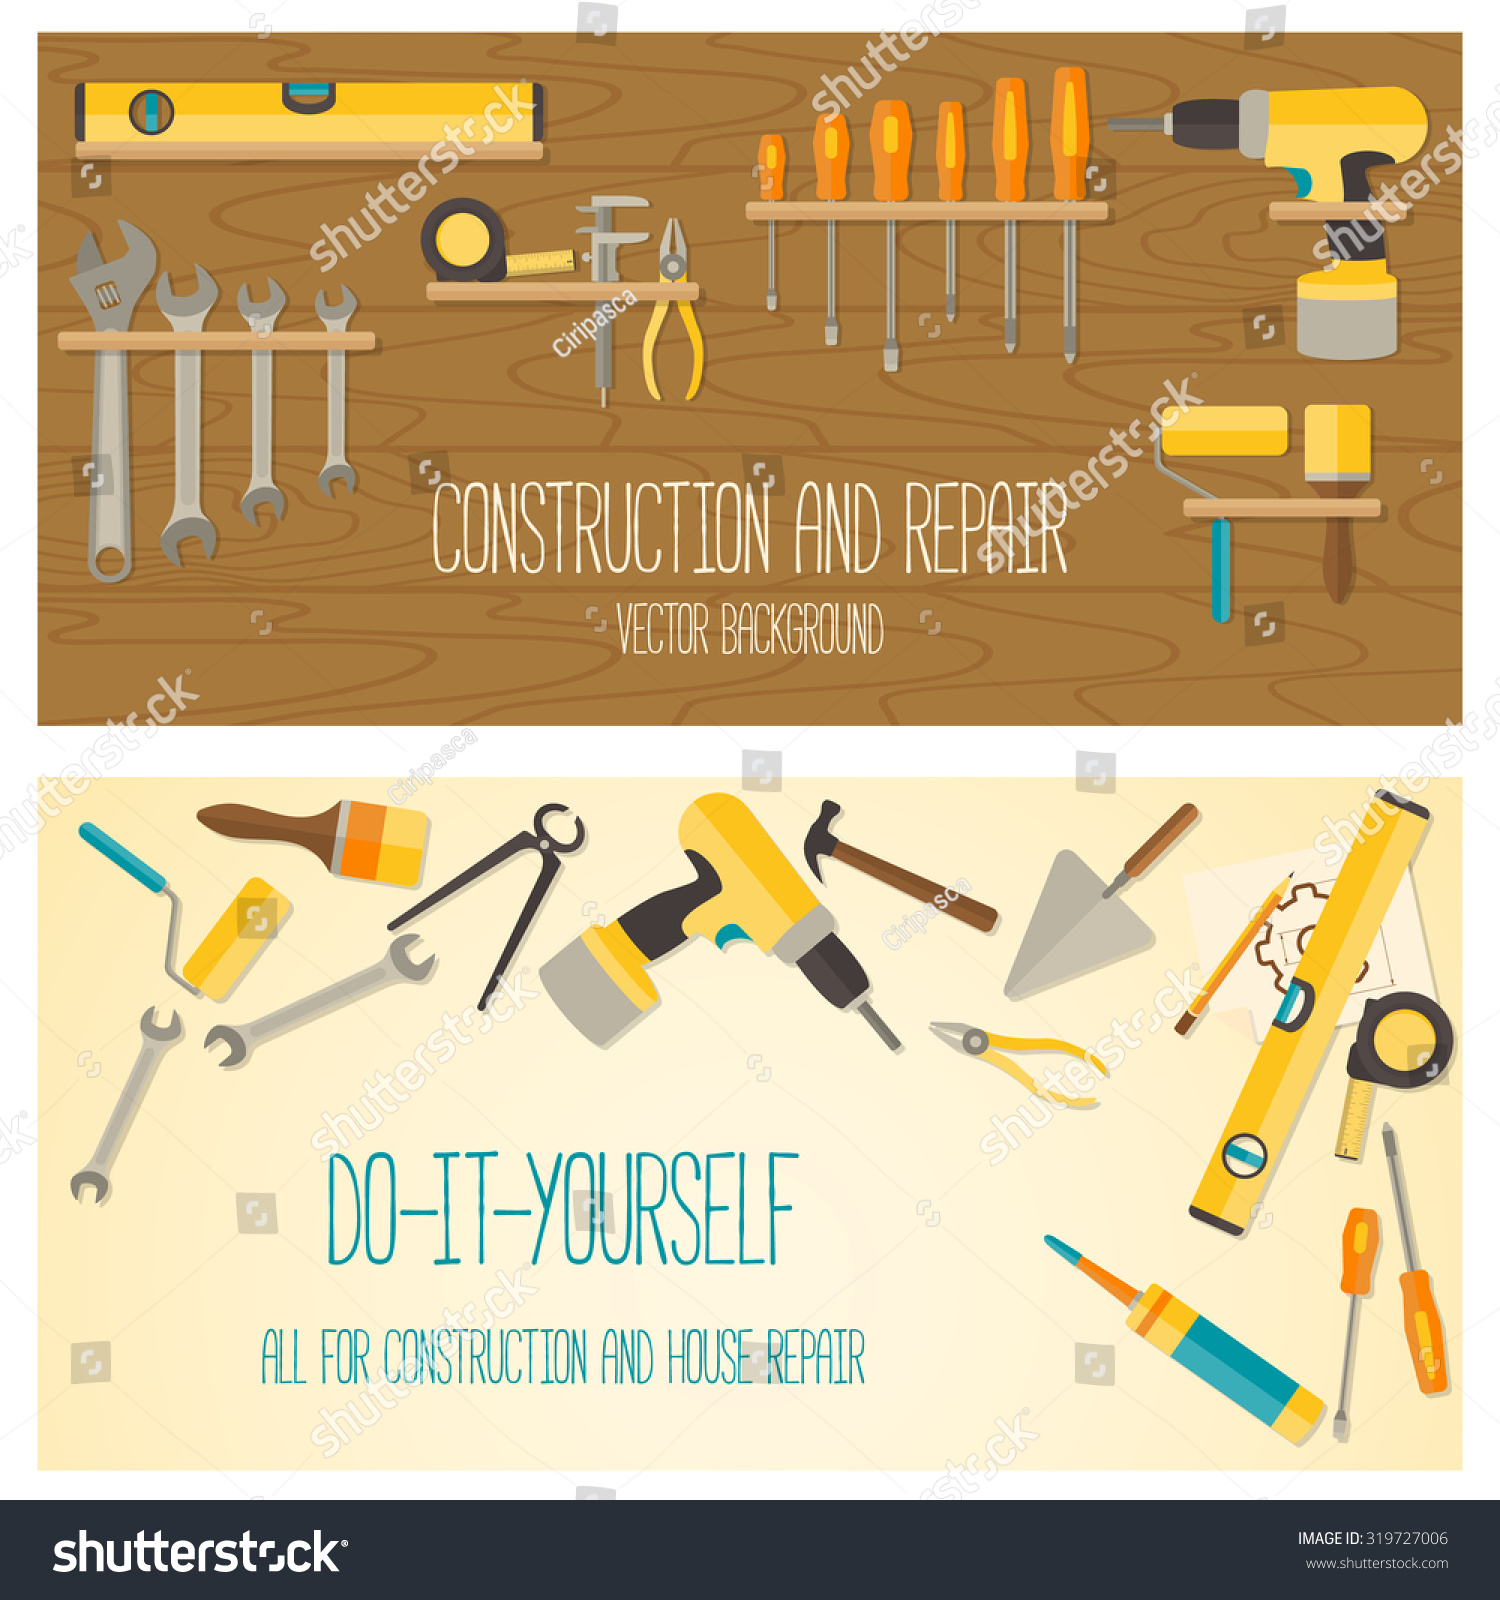 Do It Yourself Home Design: Web Banner Concept Diy Shop Vector Stock Vector 319727006